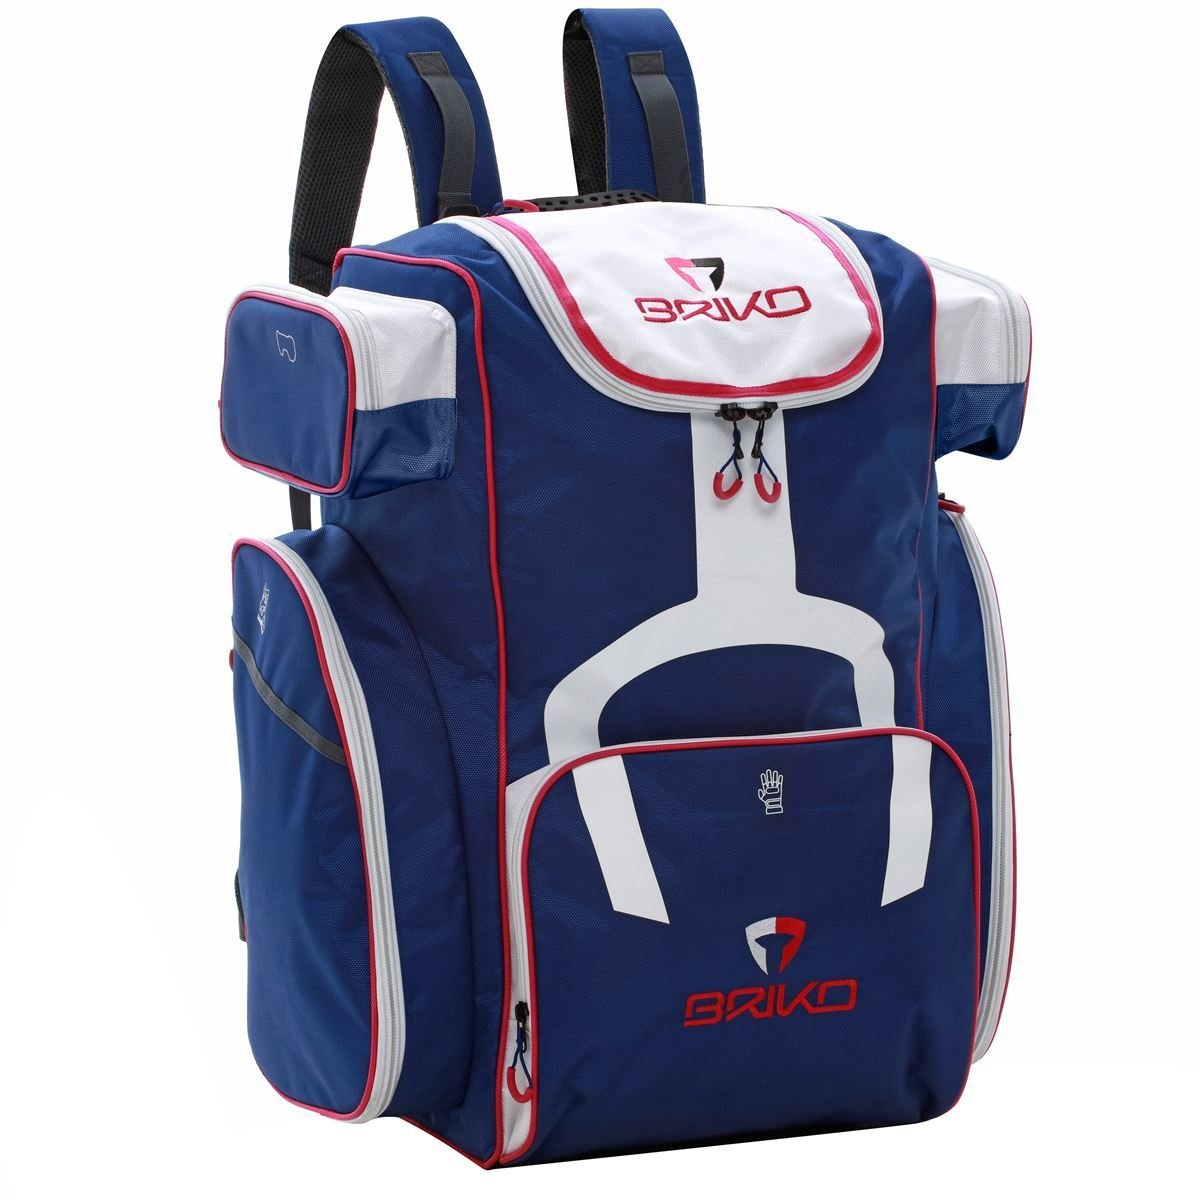 Briko Race Bag Blue Pink BRI-1041